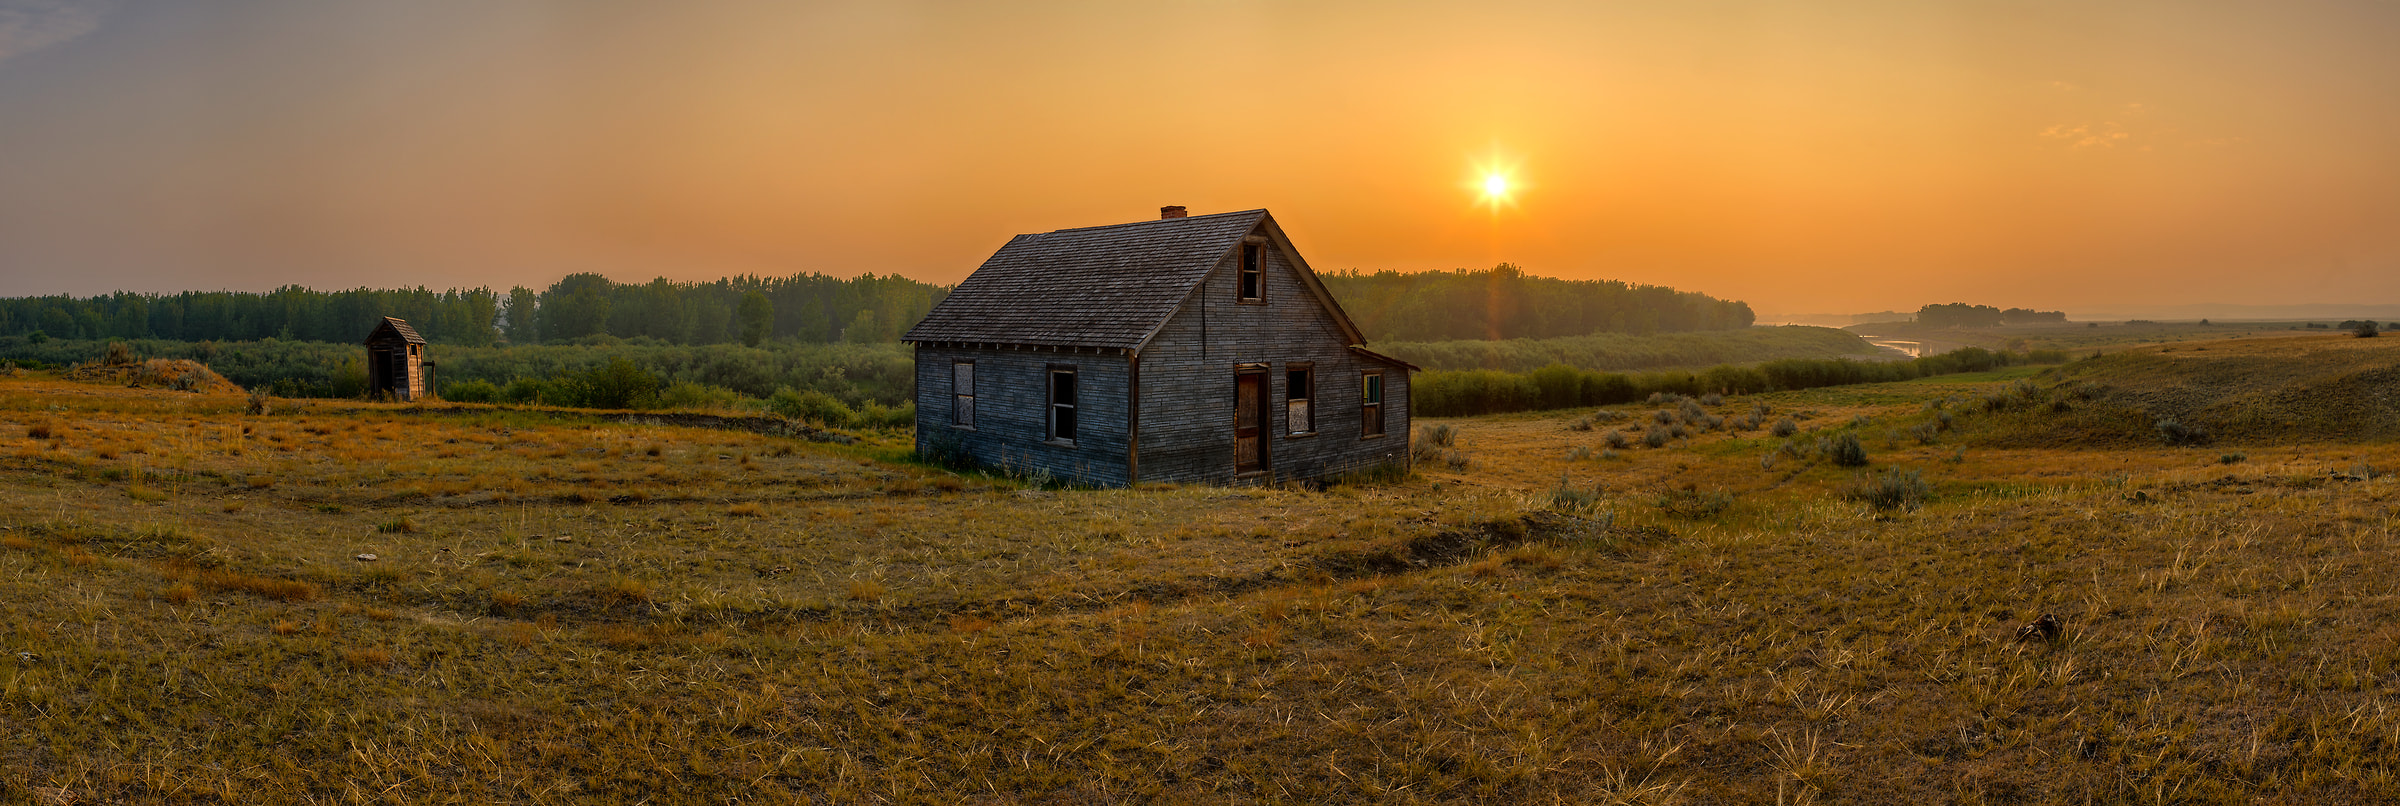 A very high resolution, large-format VAST photo of farmland, grasslands, the prairie, and an old abandoned house; fine art landscape photo created at sunrise by Scott Dimond on the Great Plains in Saskatchewan, Canada